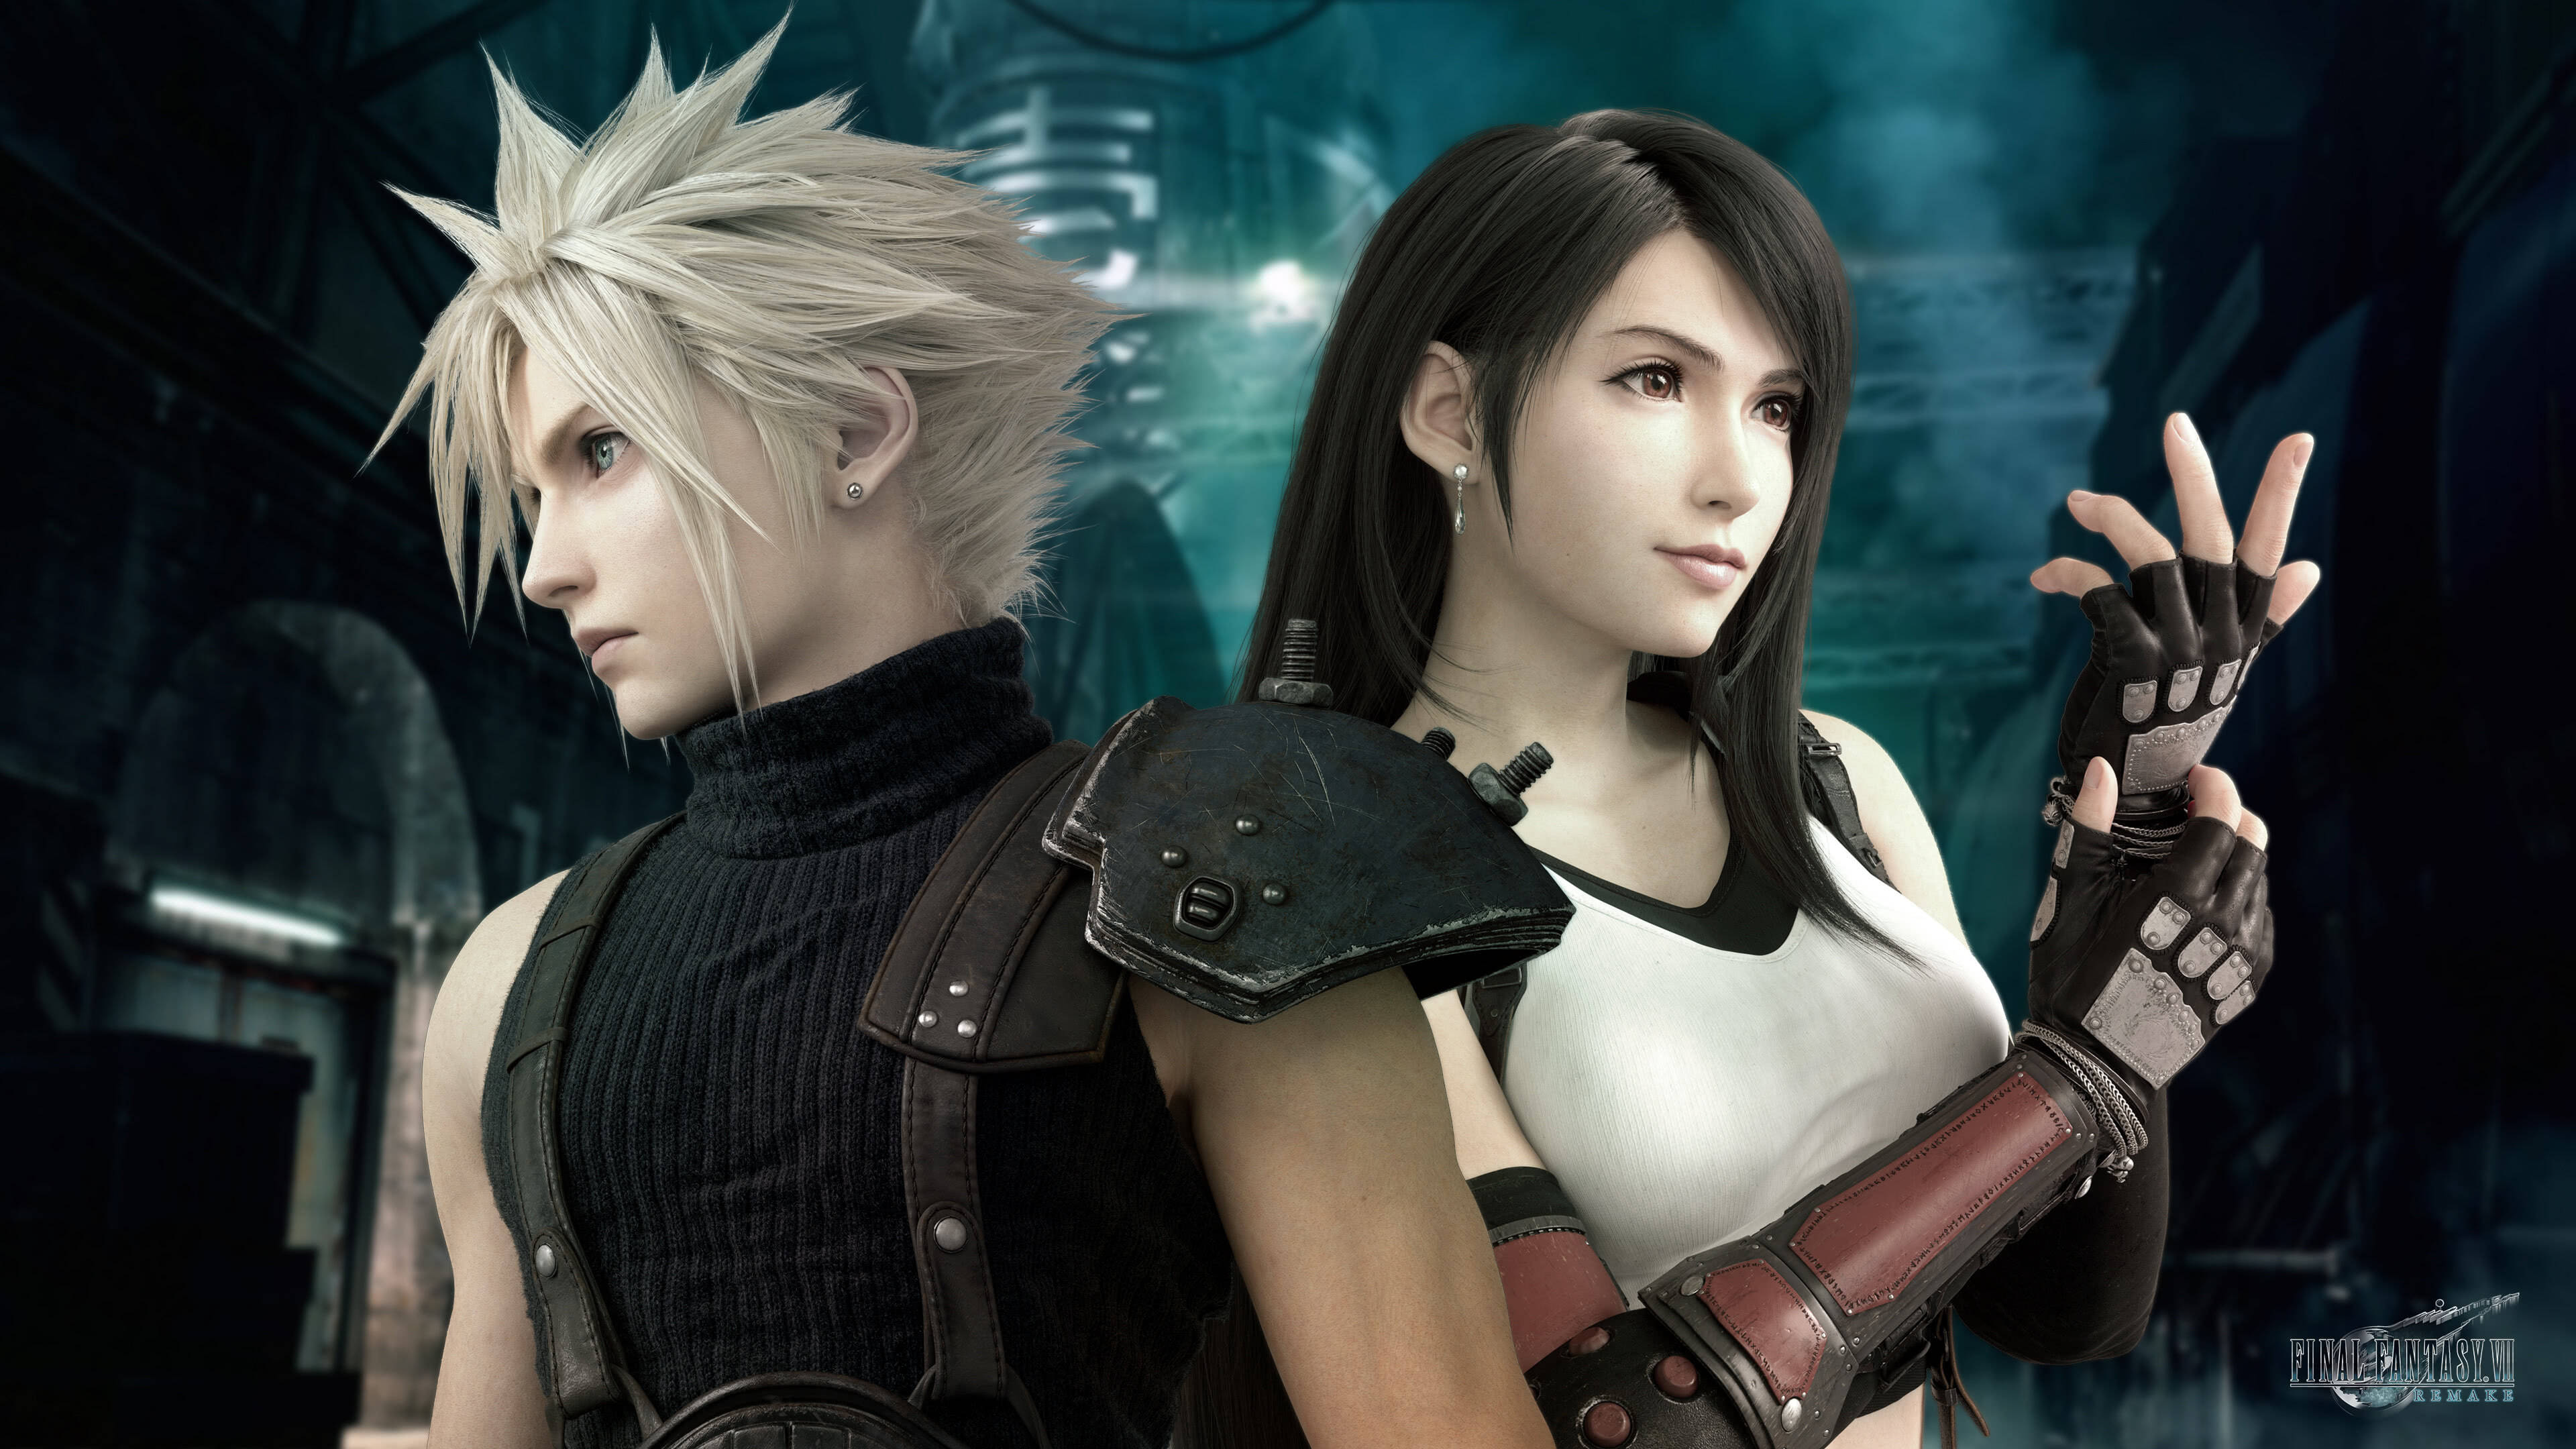 Final Fantasy 7 Remake Cloud Strife Tifa Lockhart Uhd 4k Wallpaper